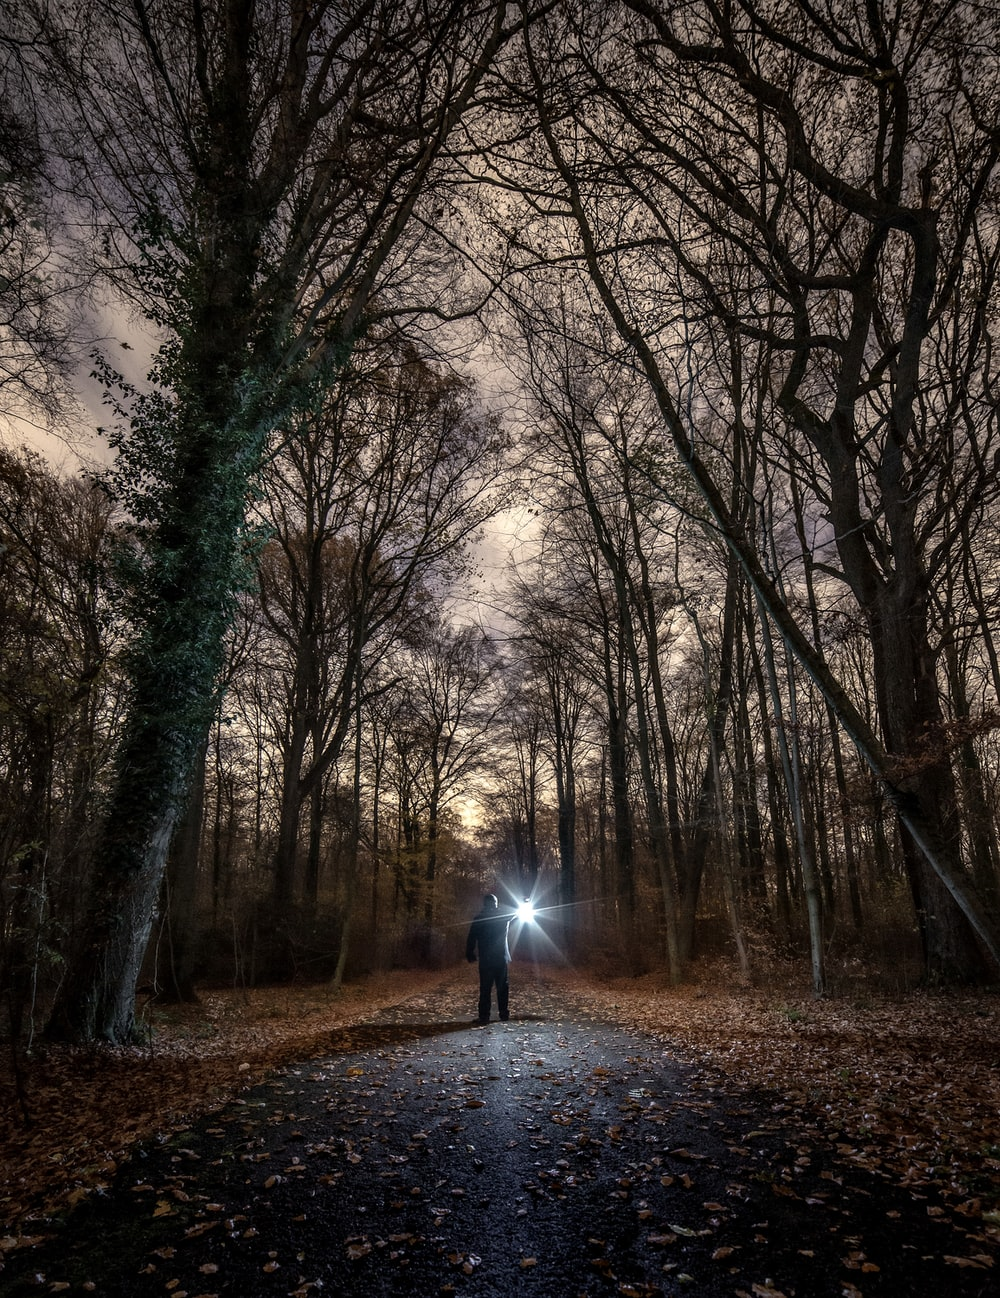 silhouette of person holding flashlight surrounded by withered trees